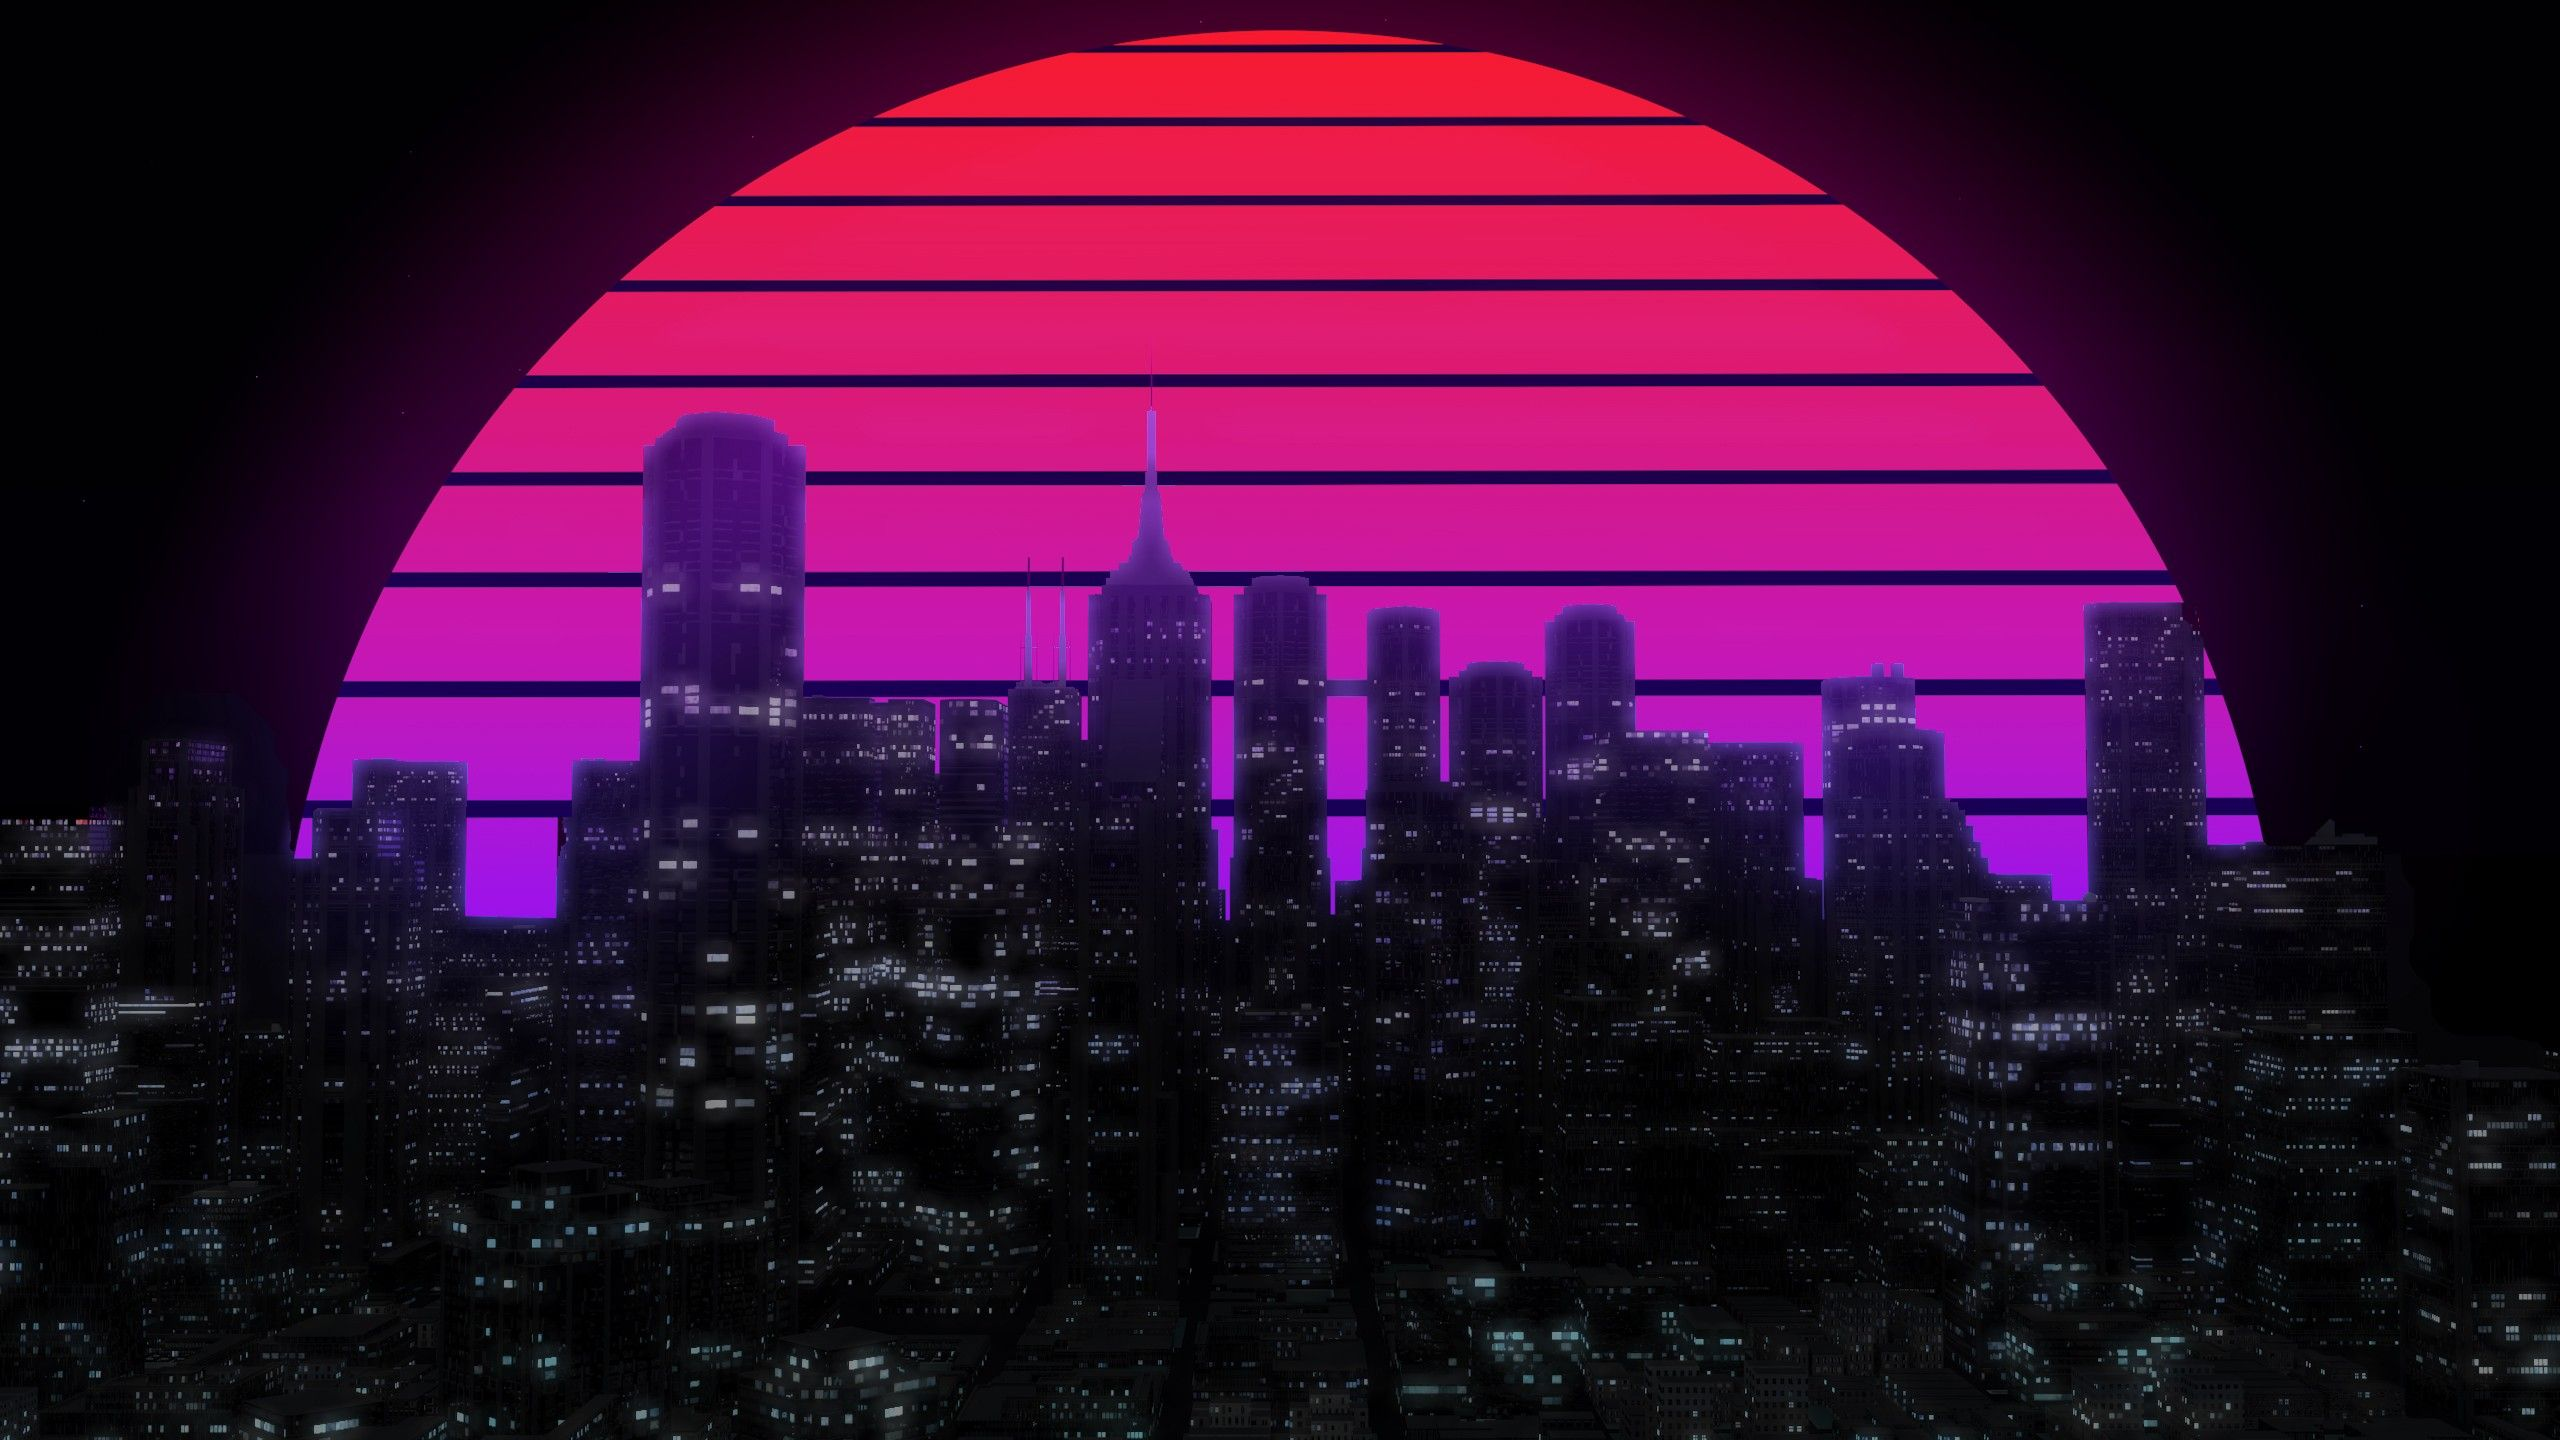 City Skyline 2K [2560x1440] in 2020 Aesthetic desktop